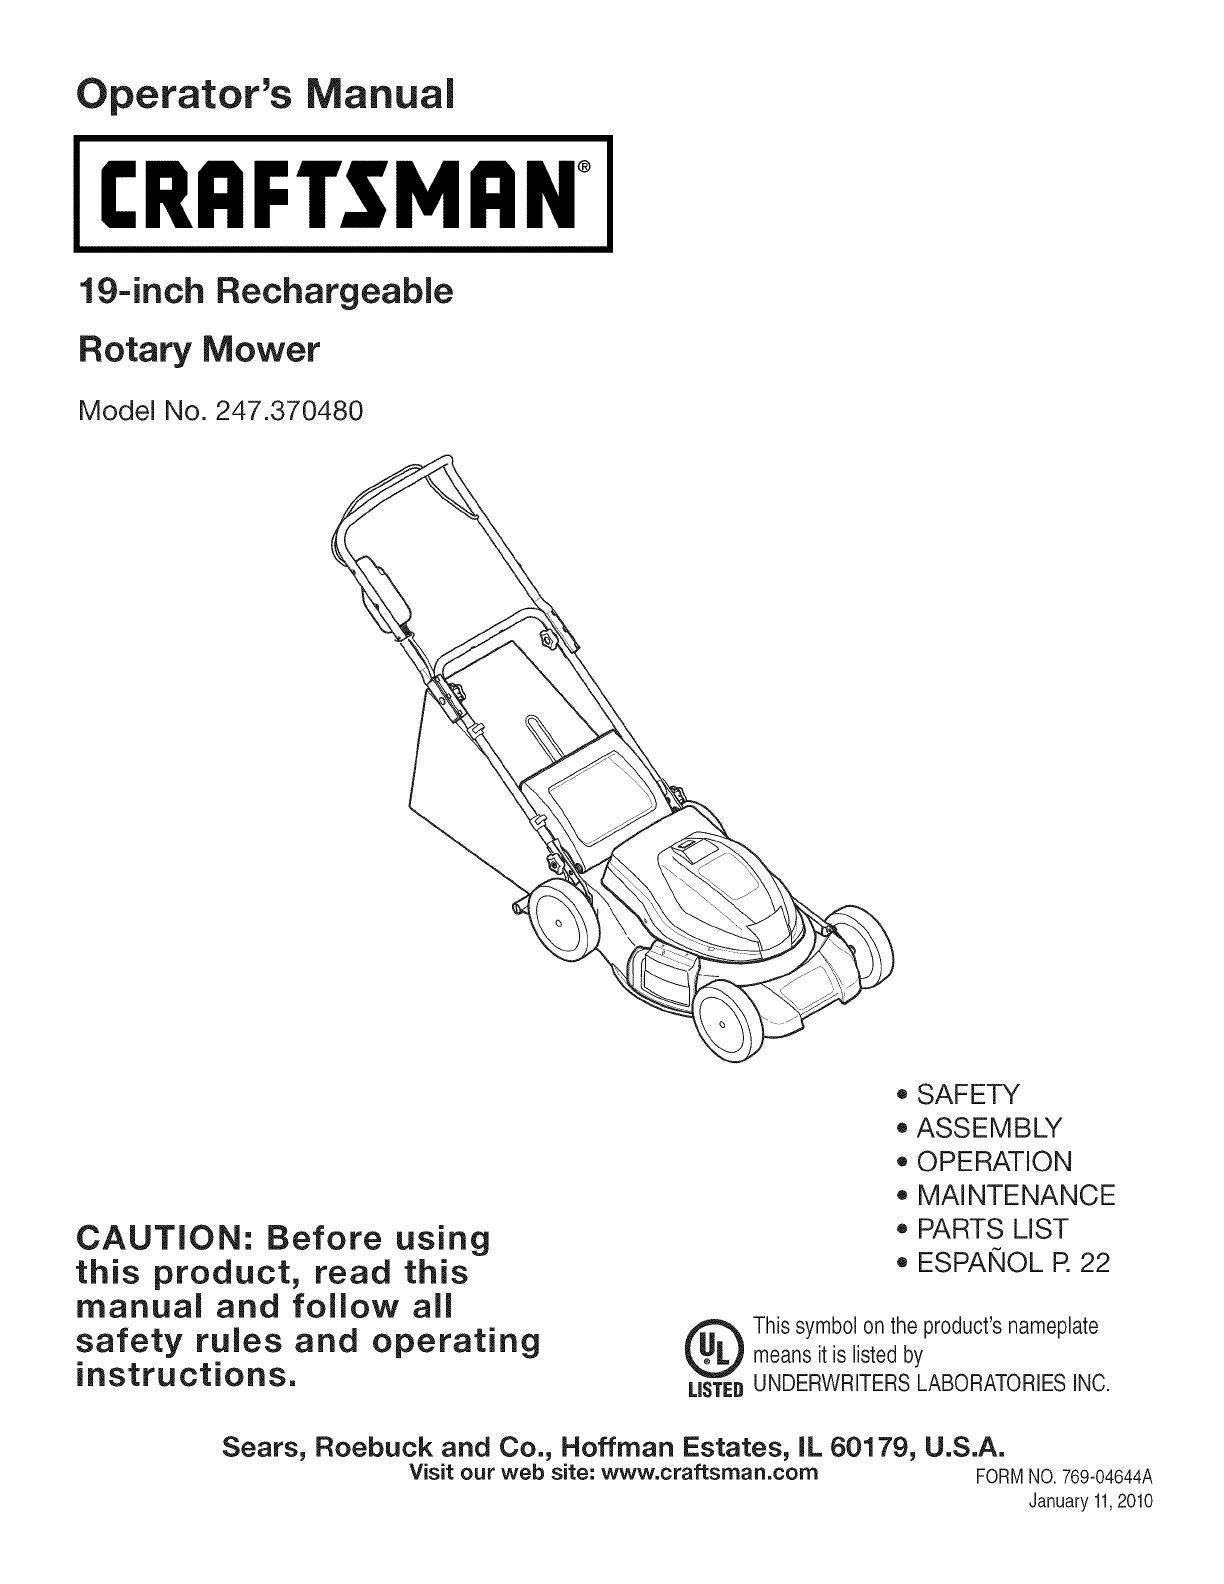 L1001282 Craftsman Rotary Manual And Manuals User Guides 247370480 Mower edxBorC